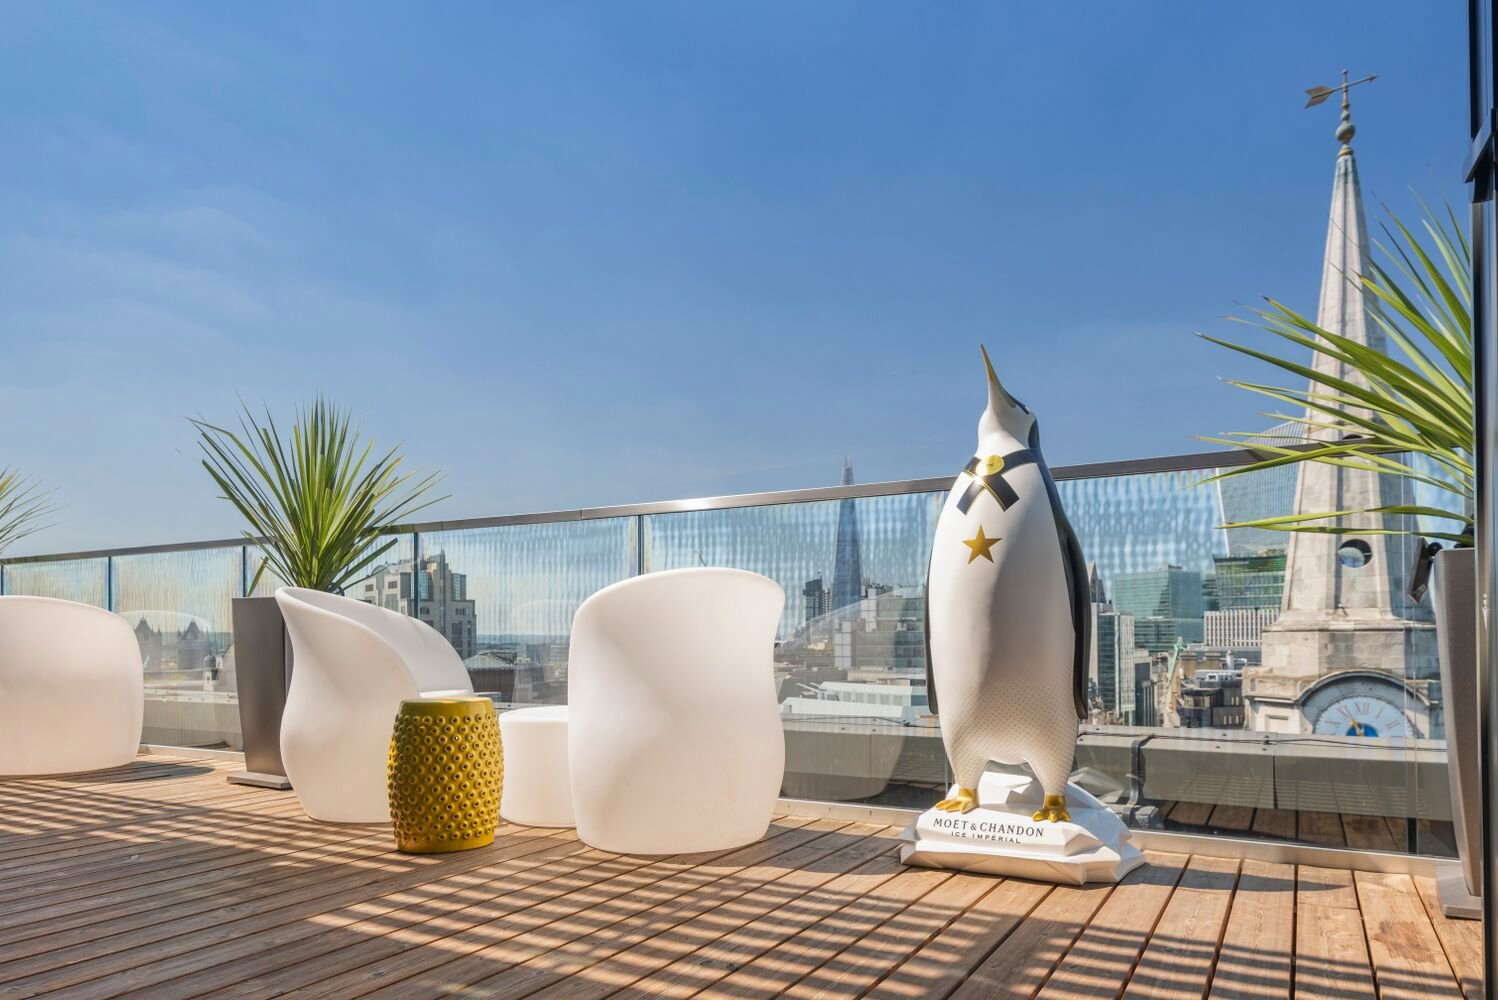 Lined with backlit furniture and a linked balcony, the rooftop deck is playful and modern.